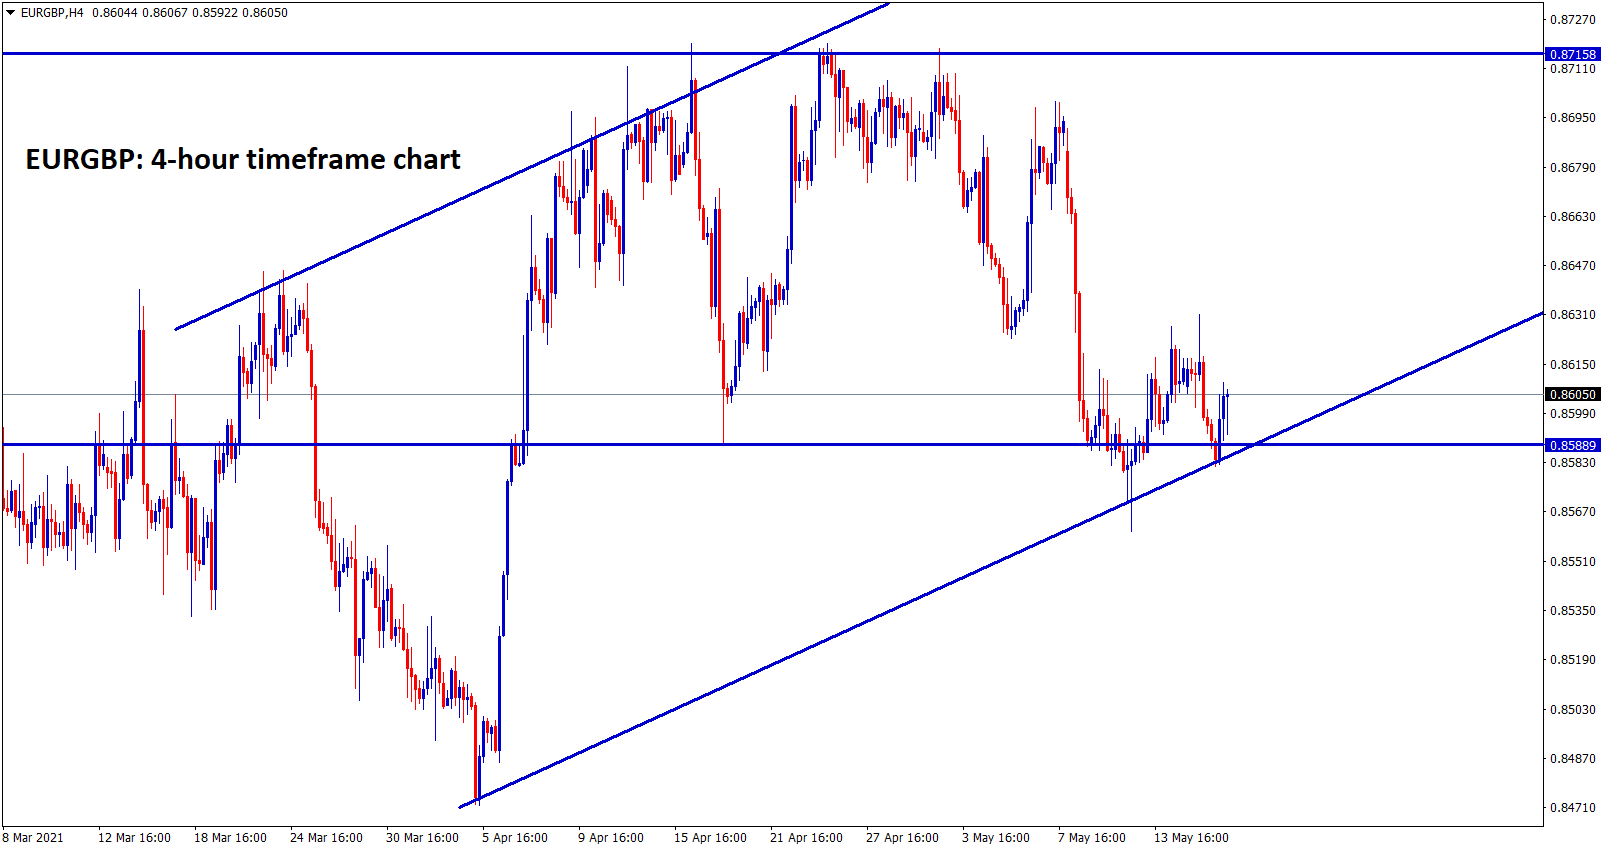 EURGBP moving between the Support and resistance and in an uptrend range.